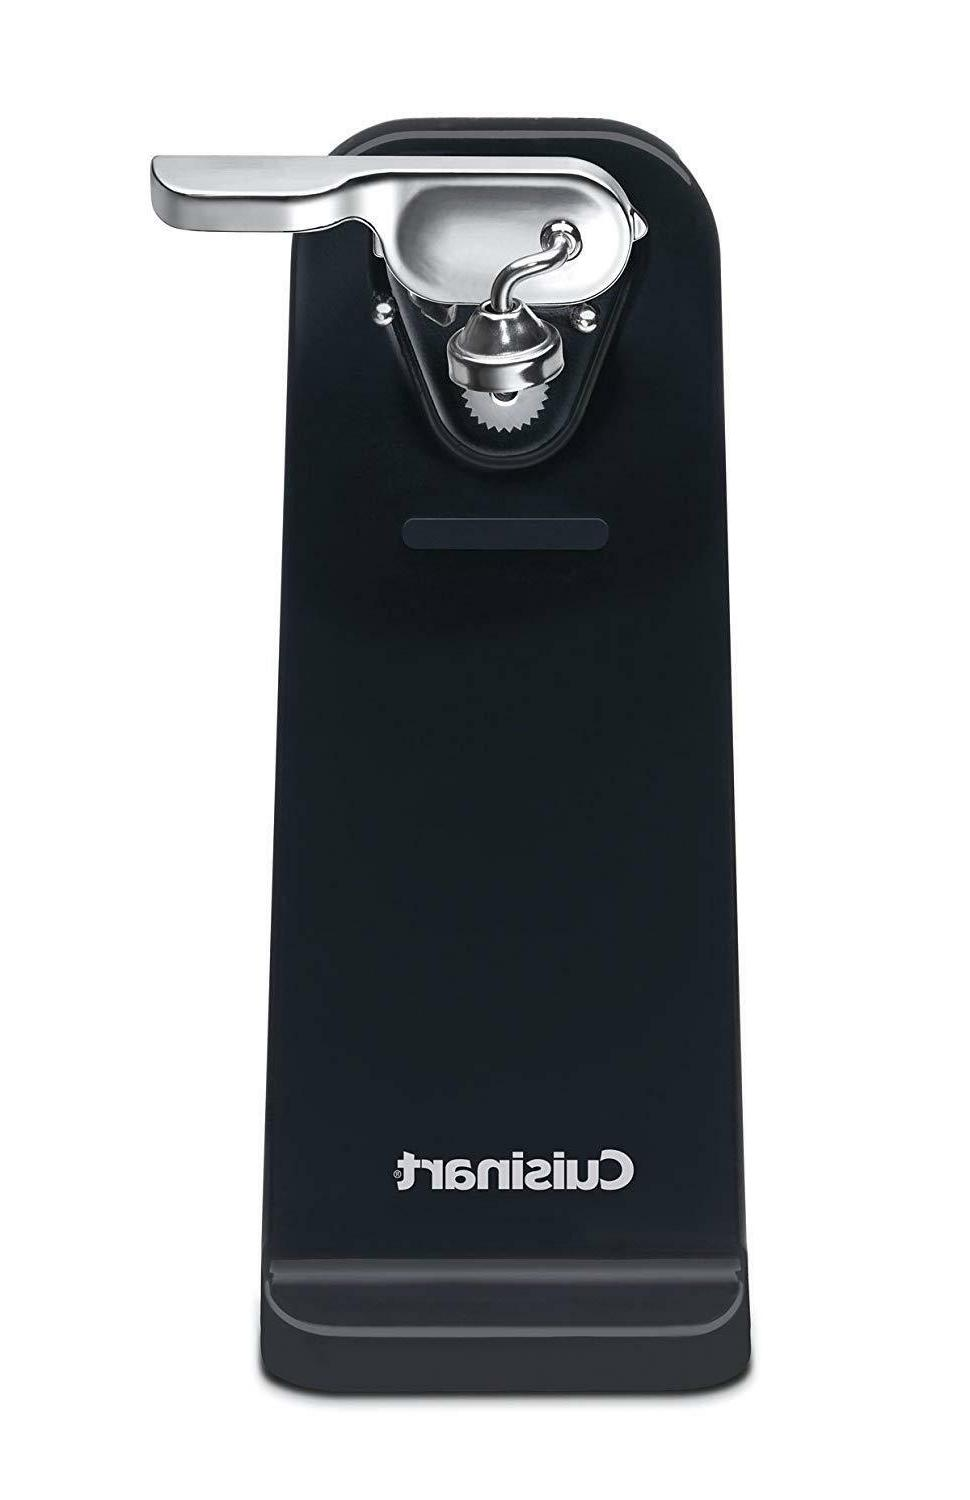 BRAND NEW! Cuisinart Deluxe Electric Can Opener, Black FREE